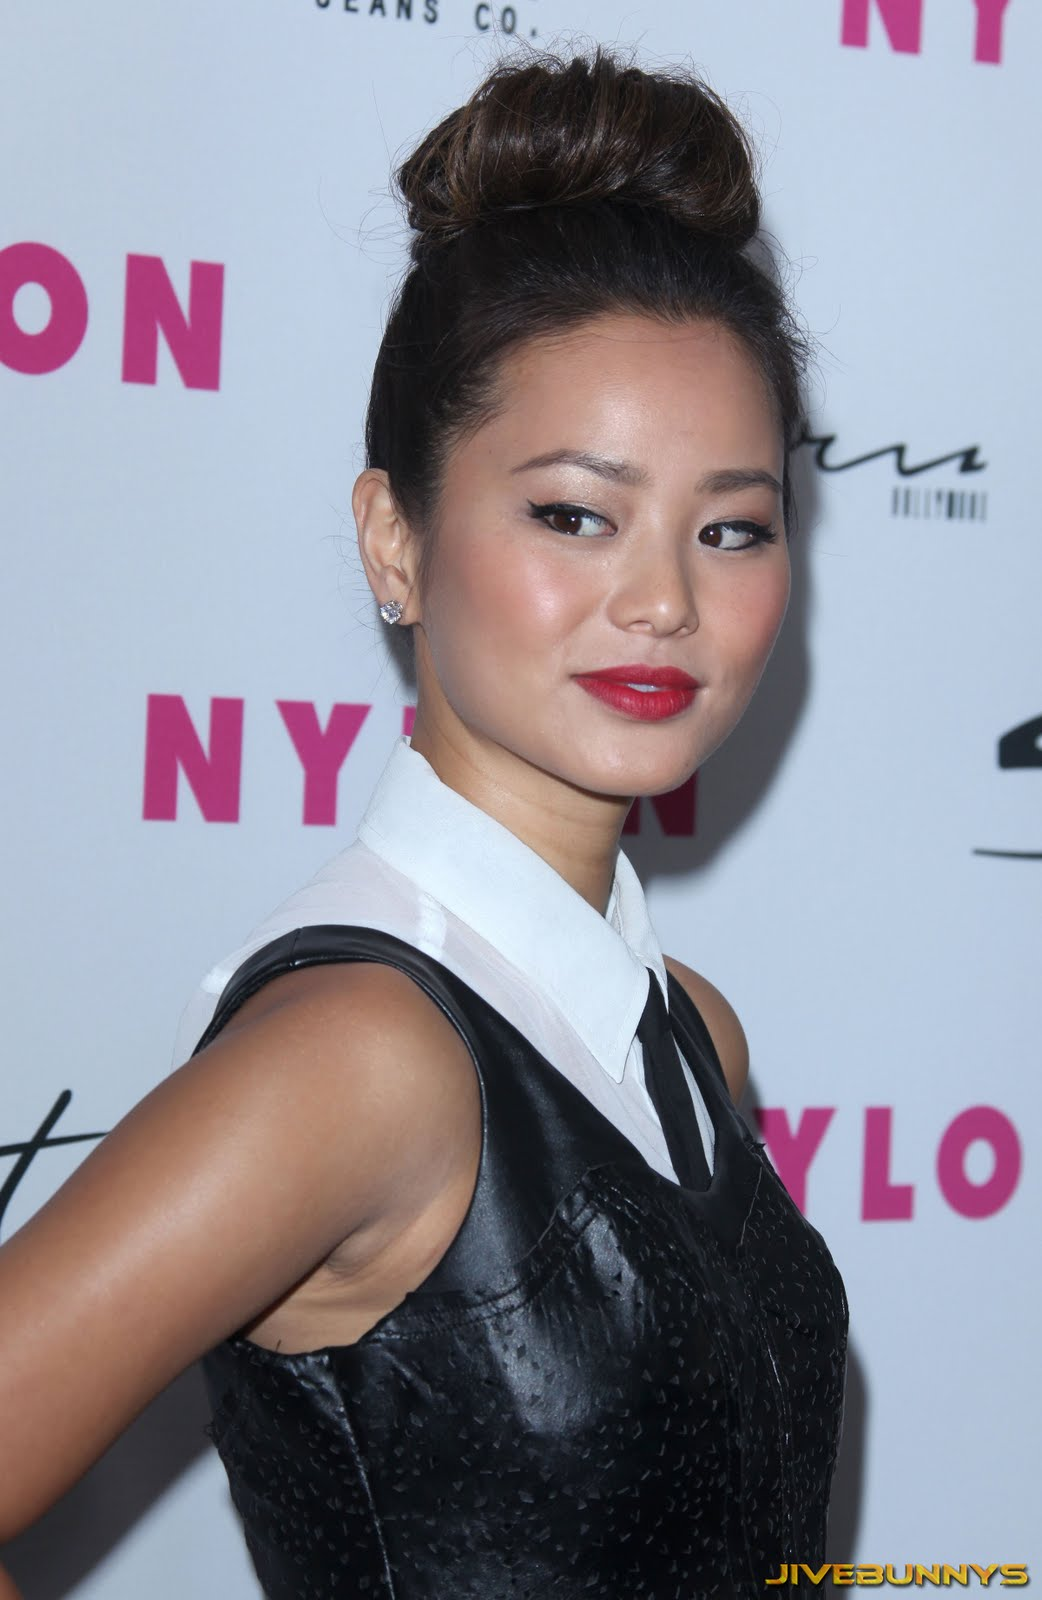 Jamie chung for the coveteur body